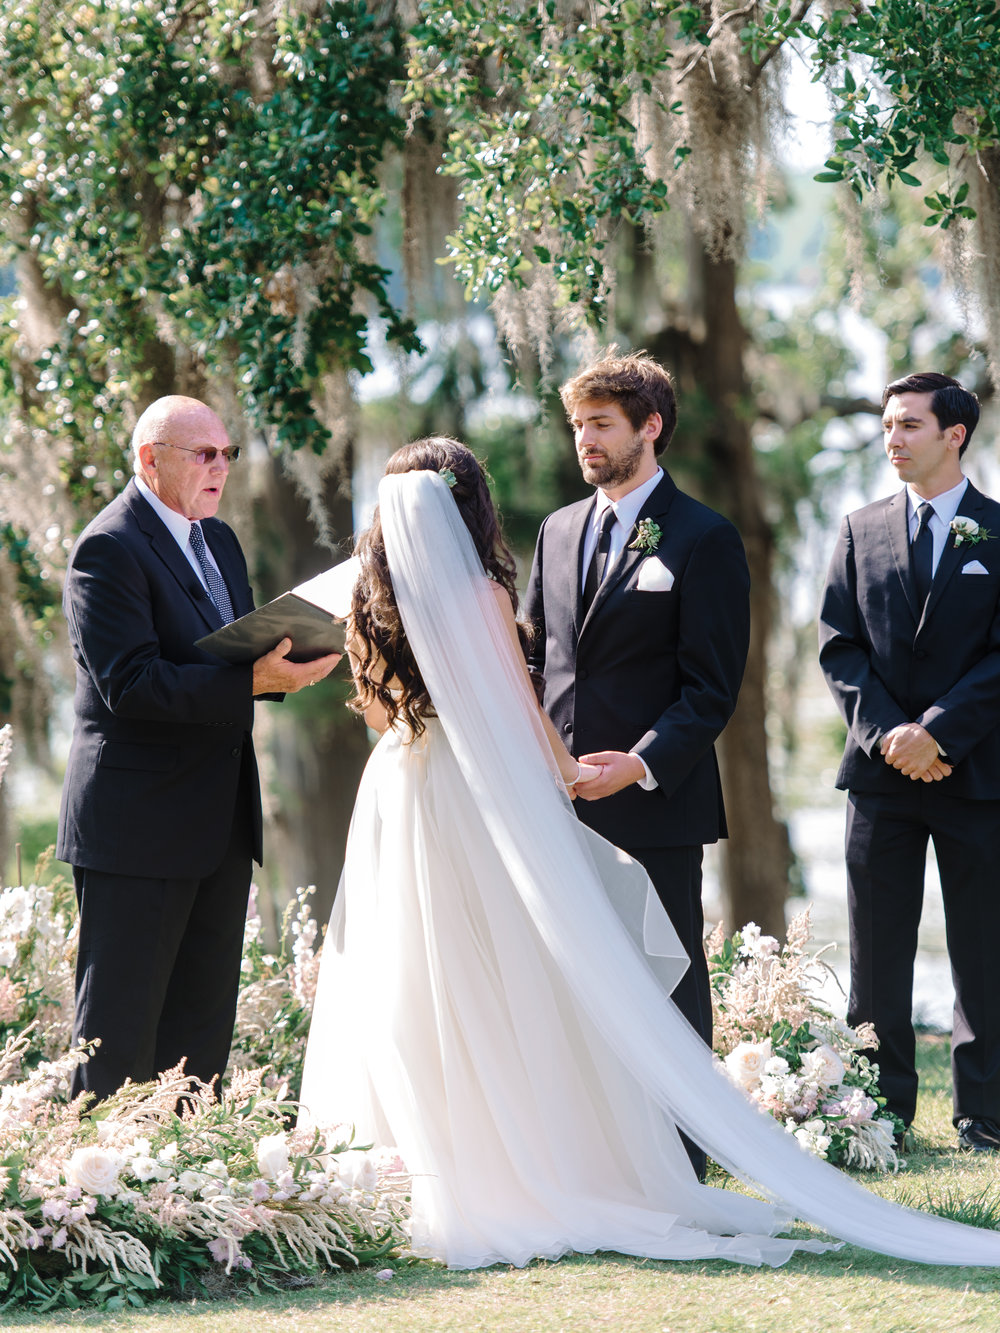 Outdoor wedding ceremony at at Wachesaw Plantation in Murrells Inlet SC  //  Myrtle Beach wedding photos by Pasha Belman Photography